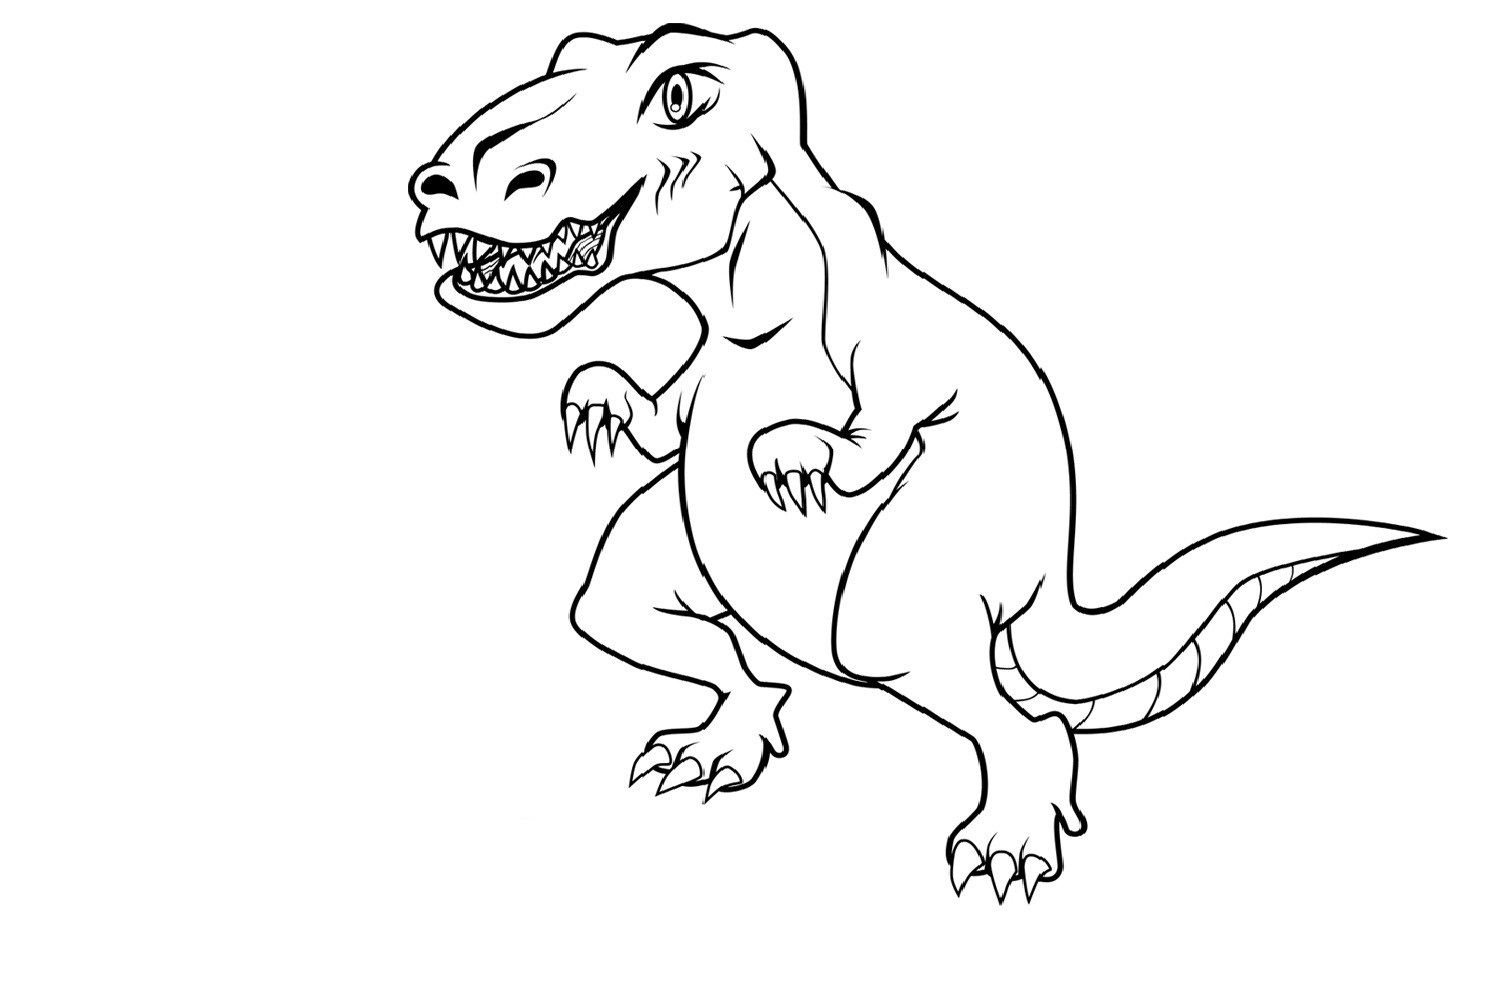 free printable dinosaur coloring pages - Free Color Pages For Kids